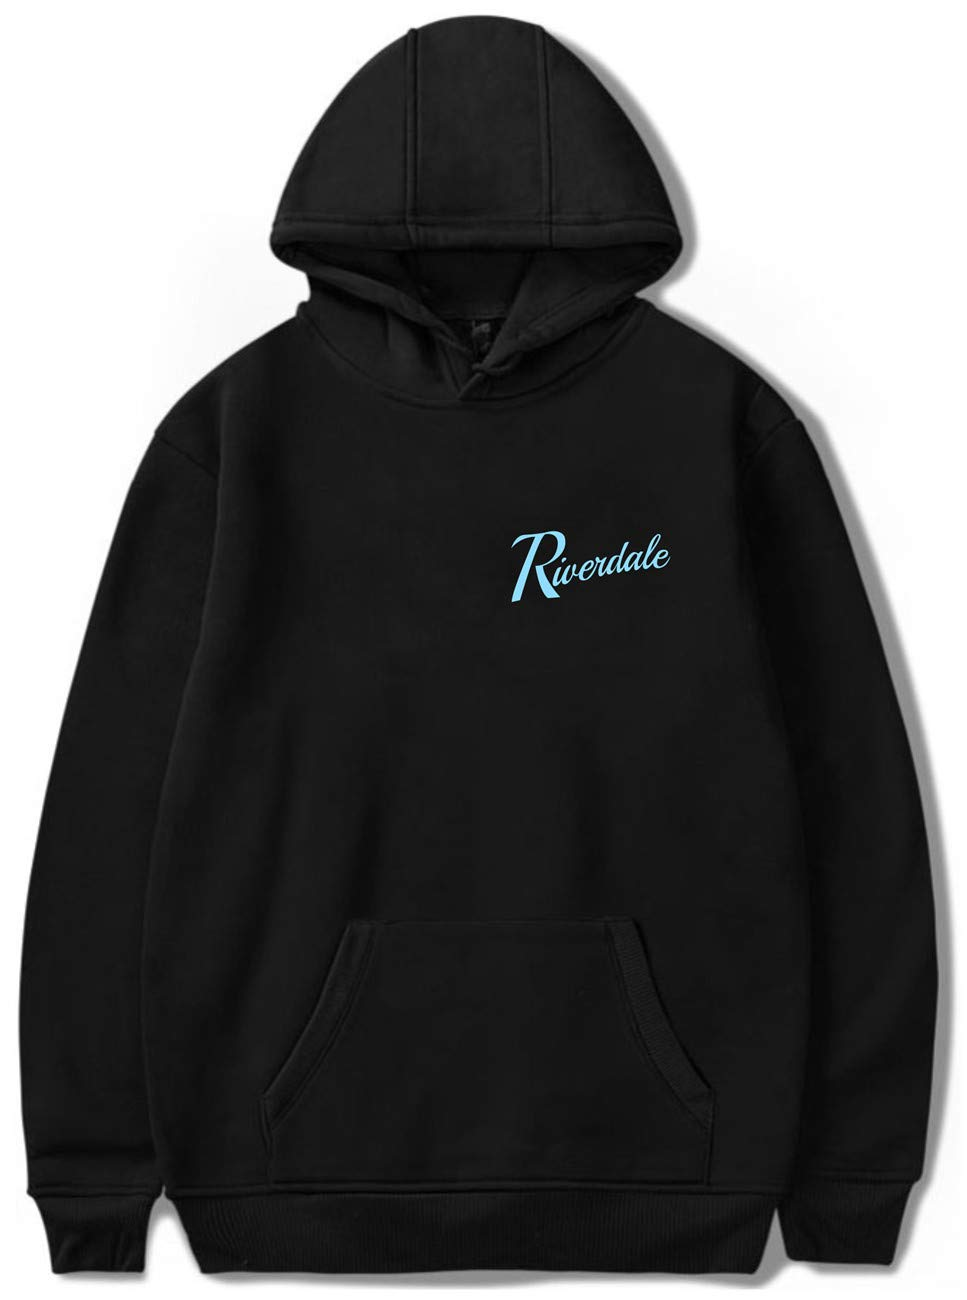 SERAPHY Unisex Hoodie Riverdale Southside Serpents Sweatshirt Black S by SERAPHY (Image #1)